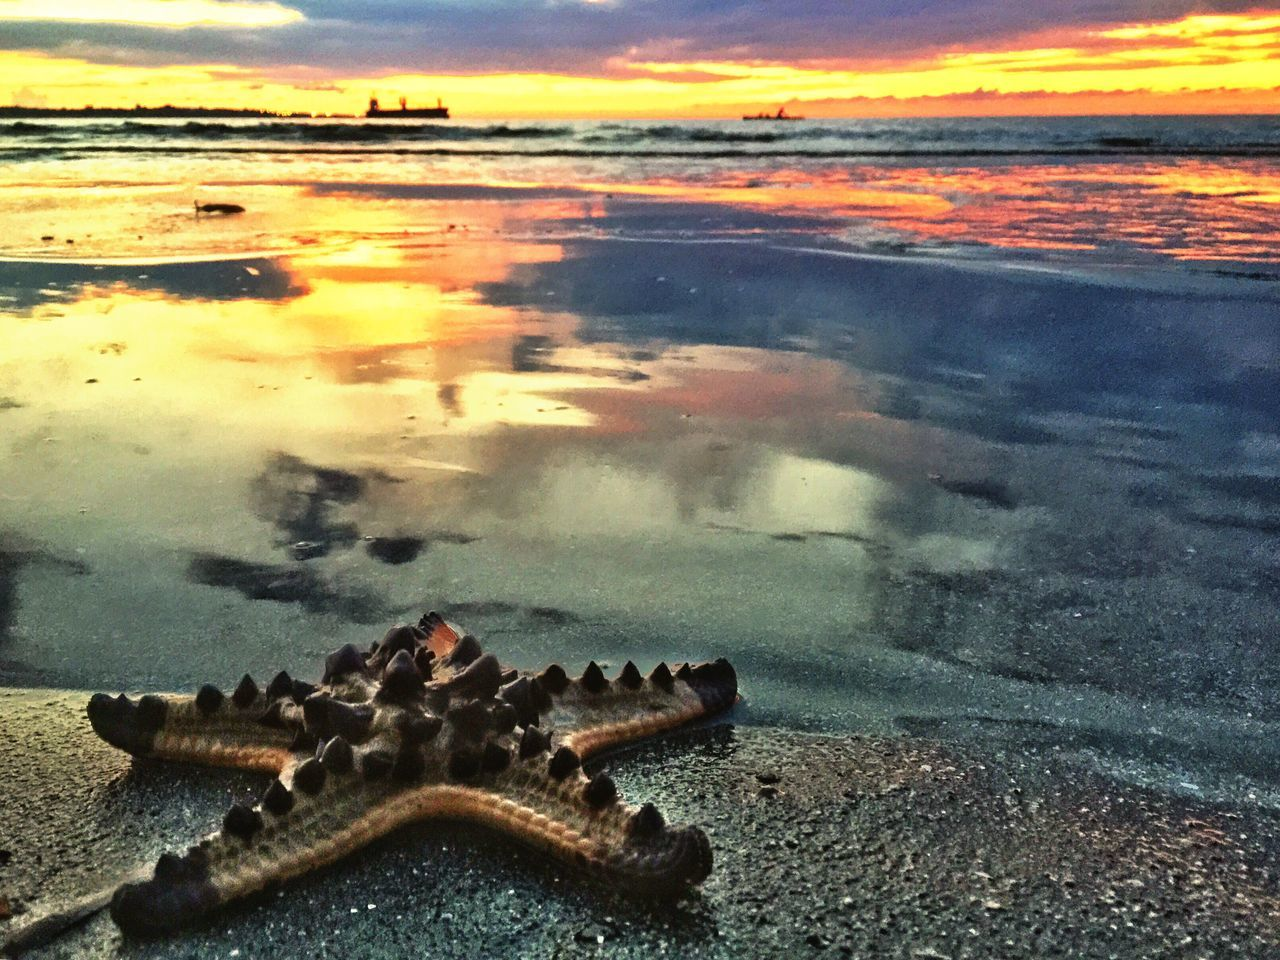 water, sunset, nature, beauty in nature, no people, beach, sea, outdoors, scenics, animal themes, sky, day, close-up